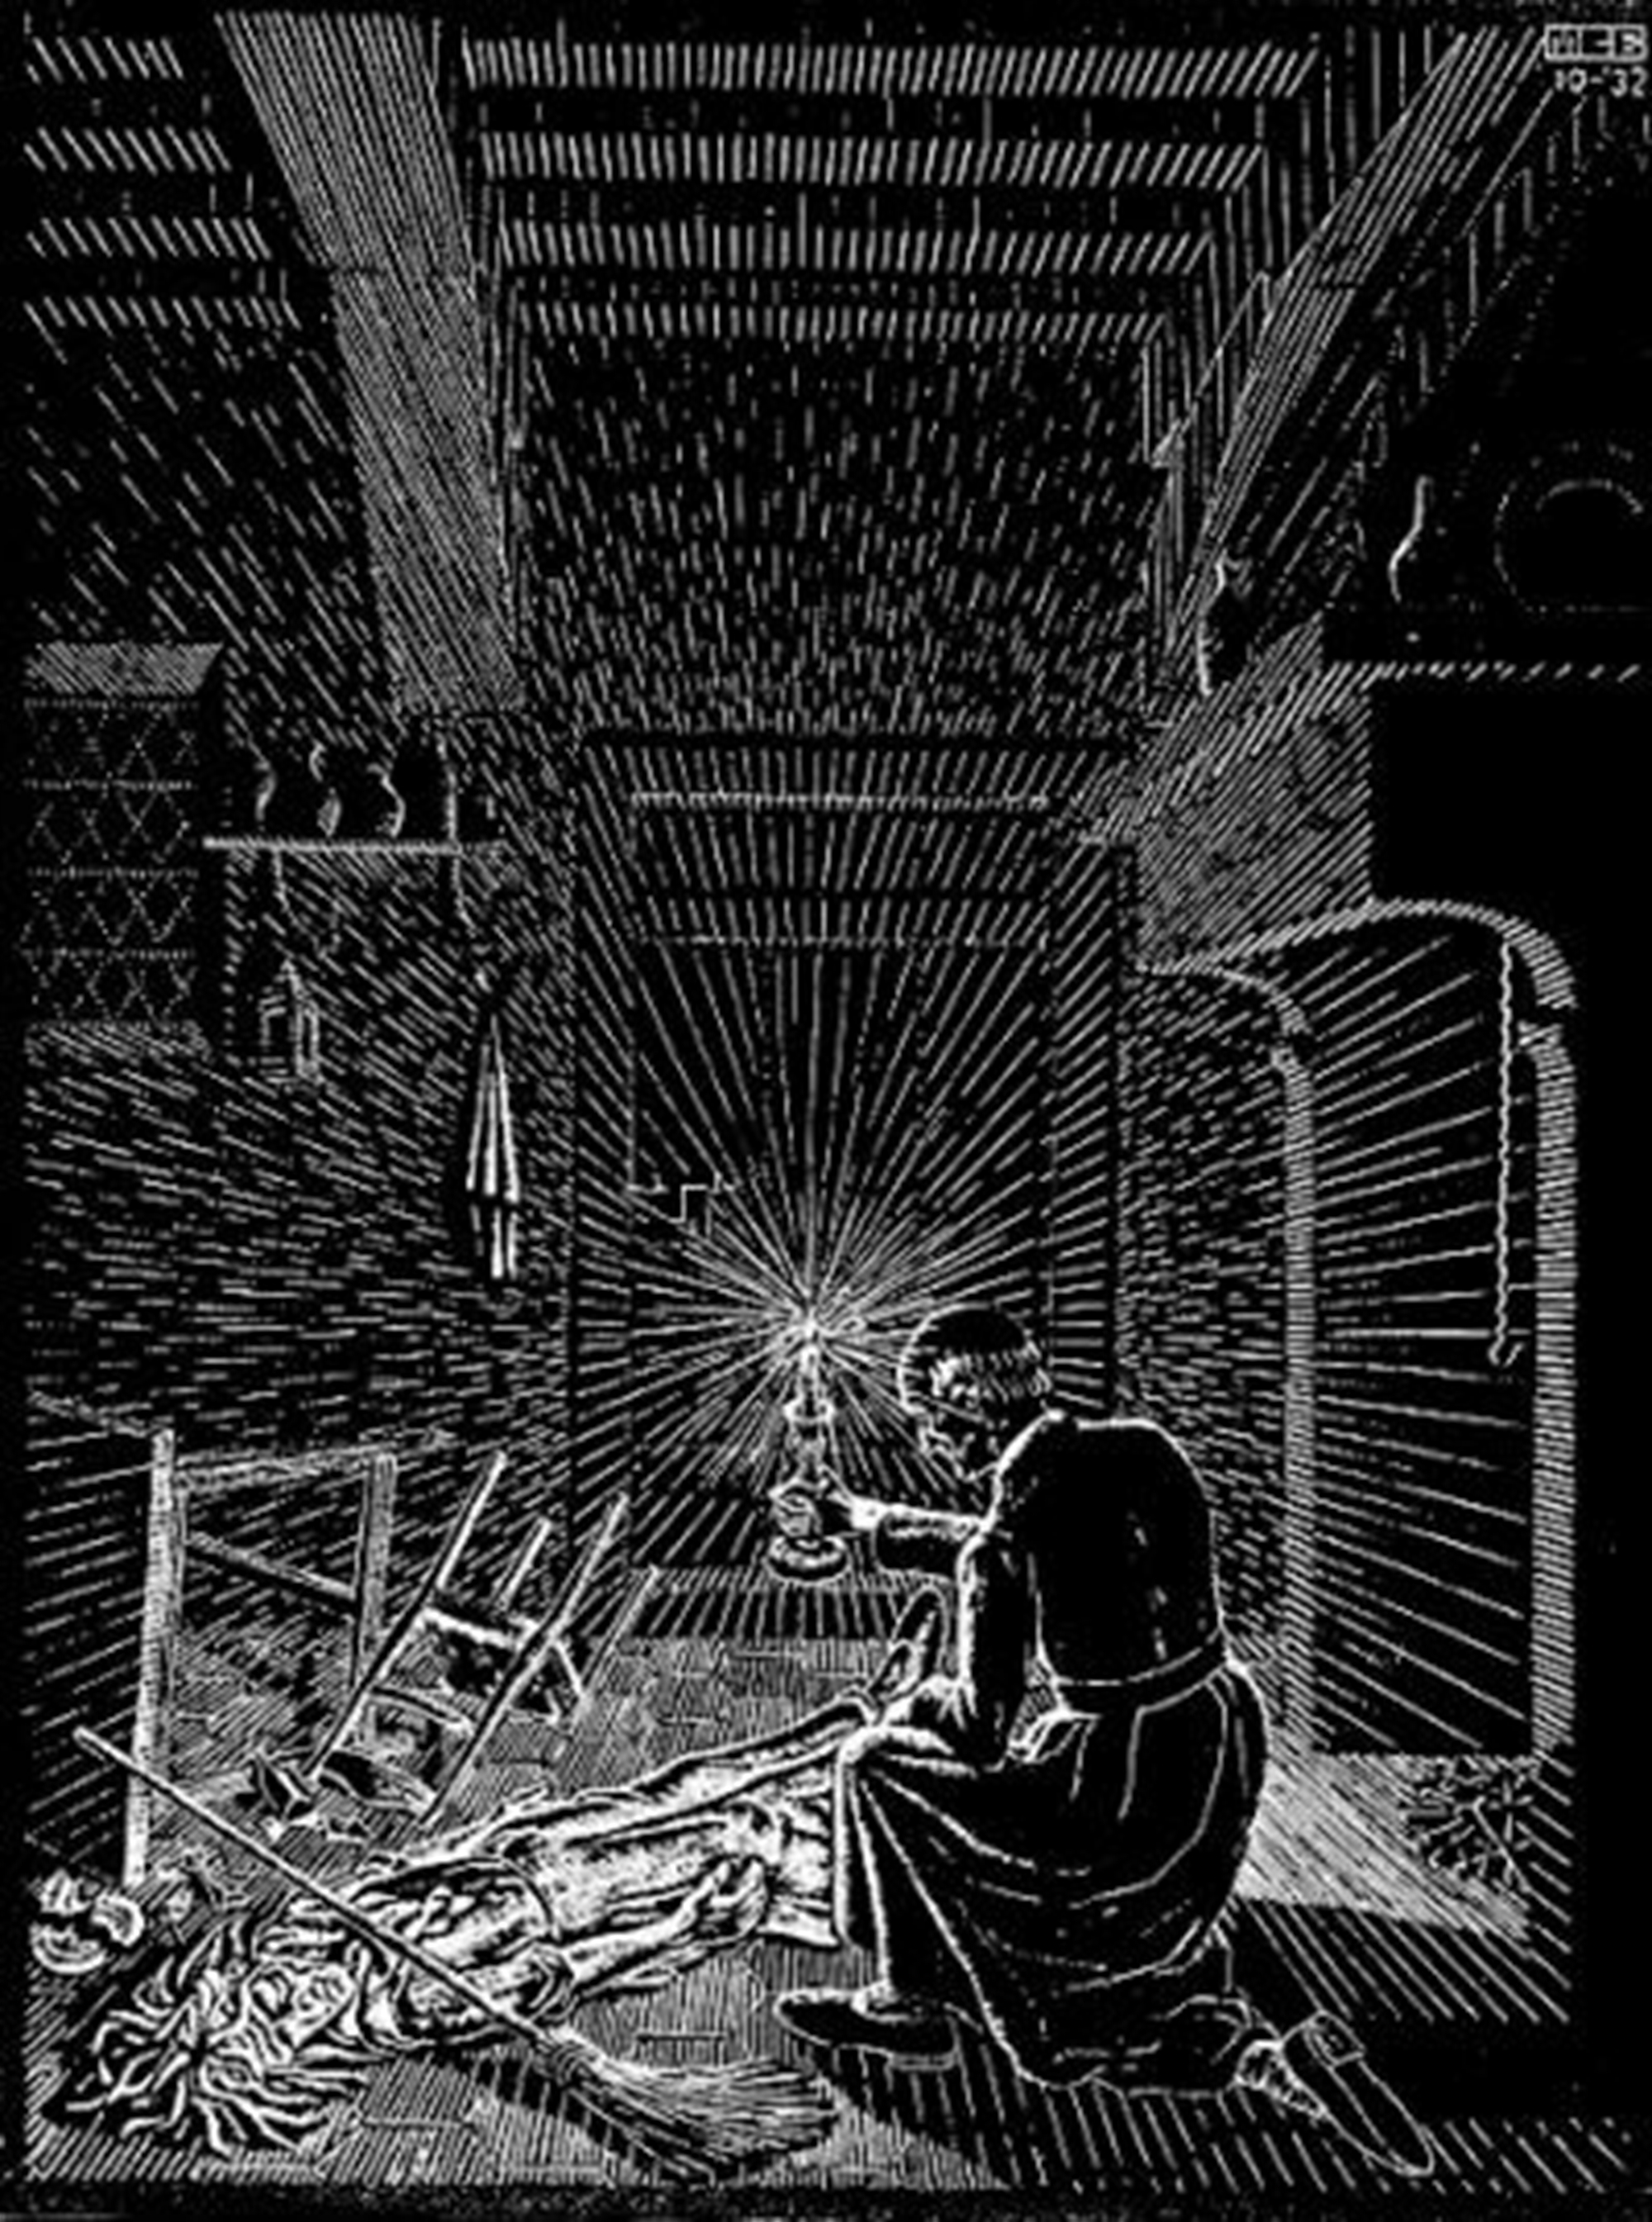 Scholastica (Bad Dream) by M.C. Escher